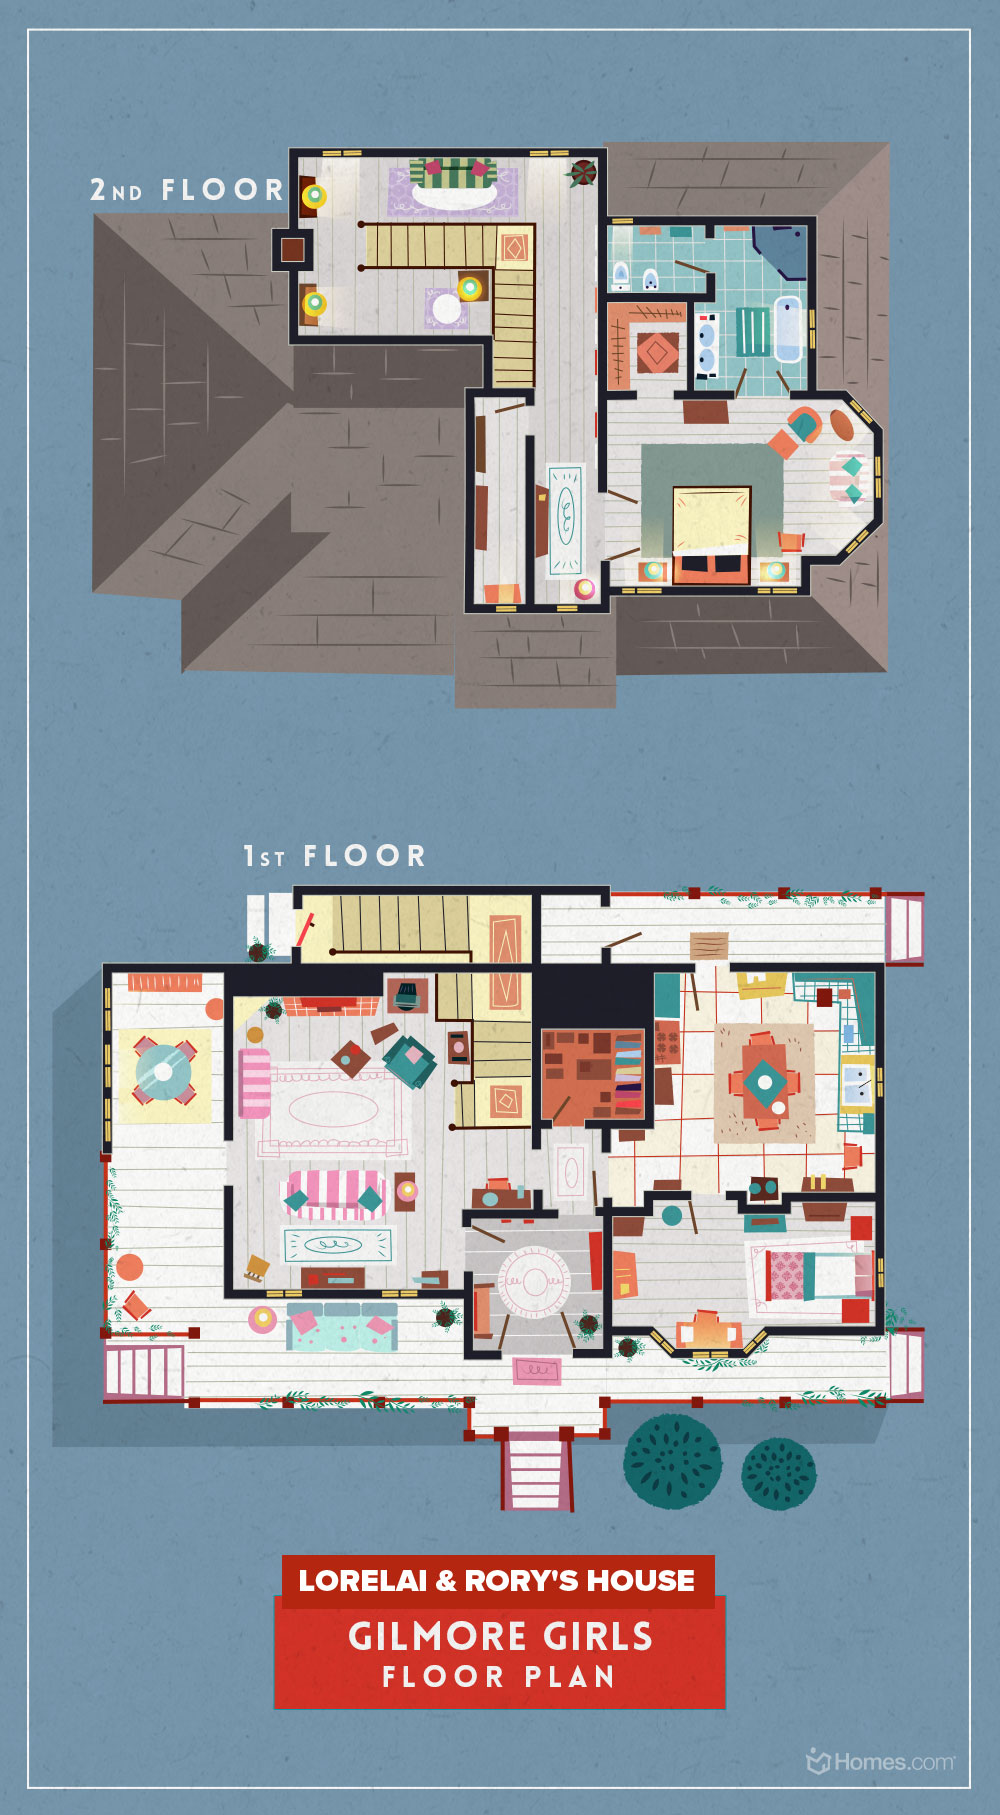 Floor Plans Of Popular TV Show Homes - Gilmore Girls